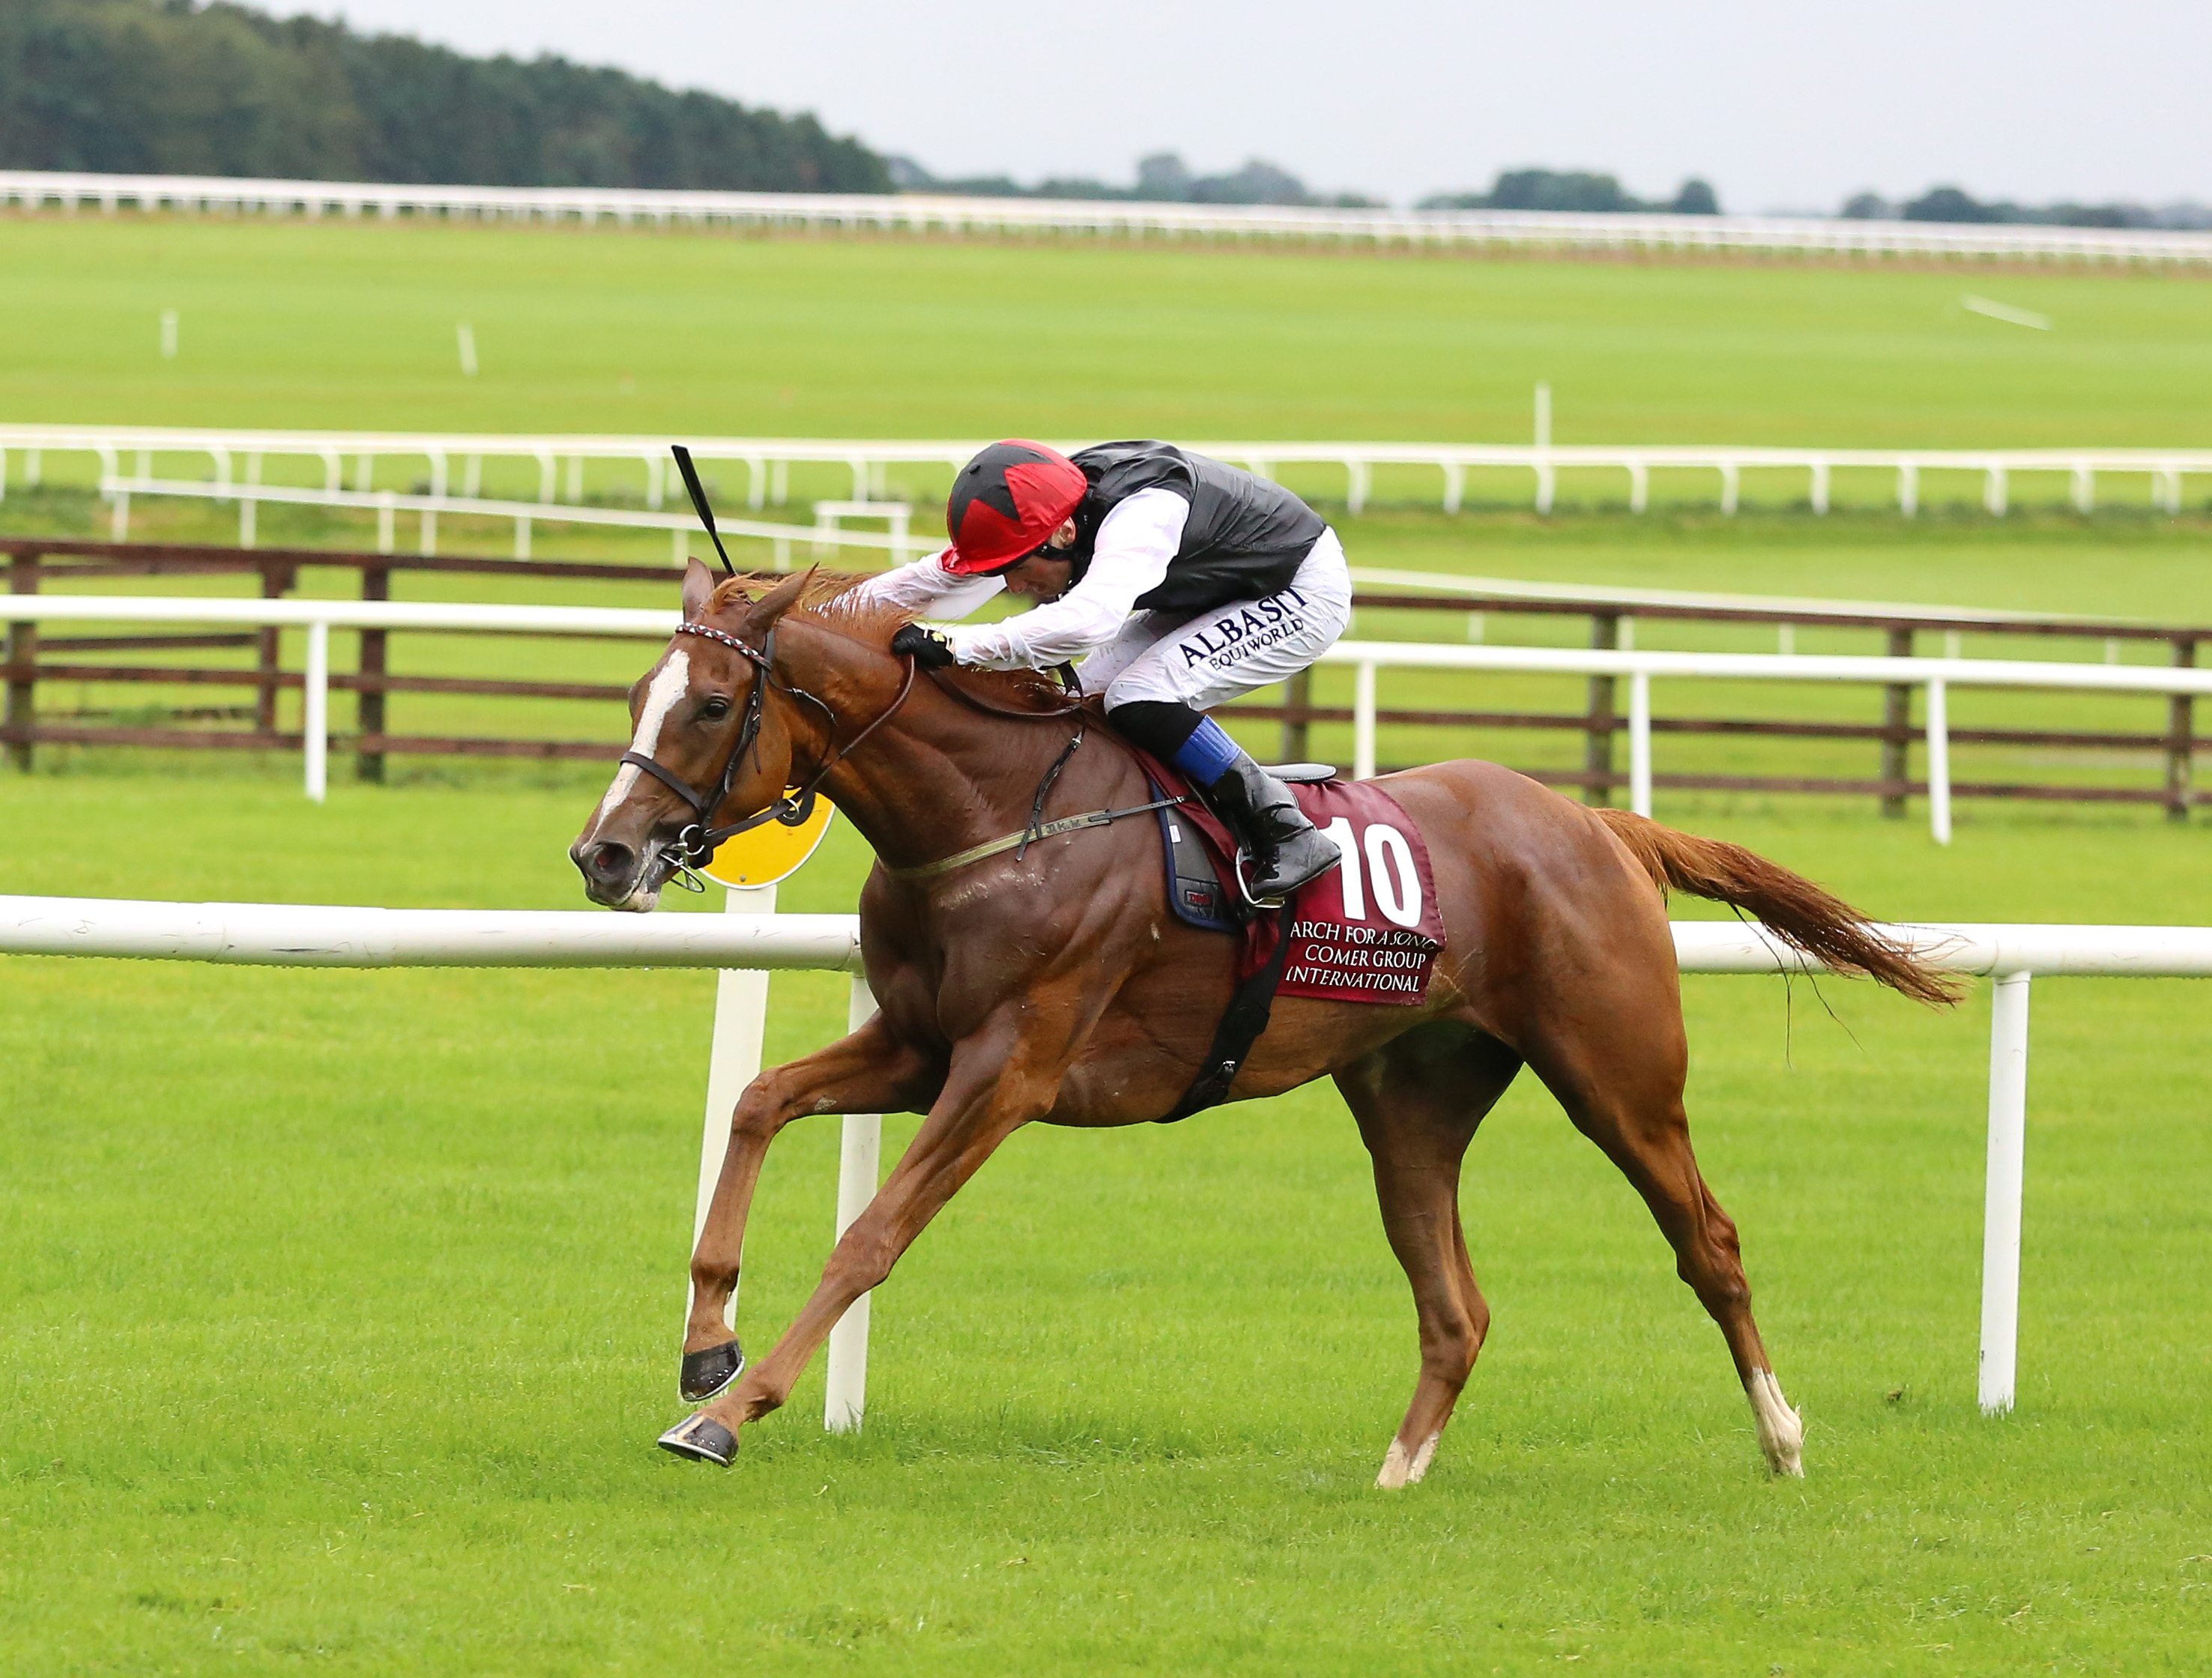 IRISH ST LEGER (GR1) - Search for a Song, le nouveau tube de Weld